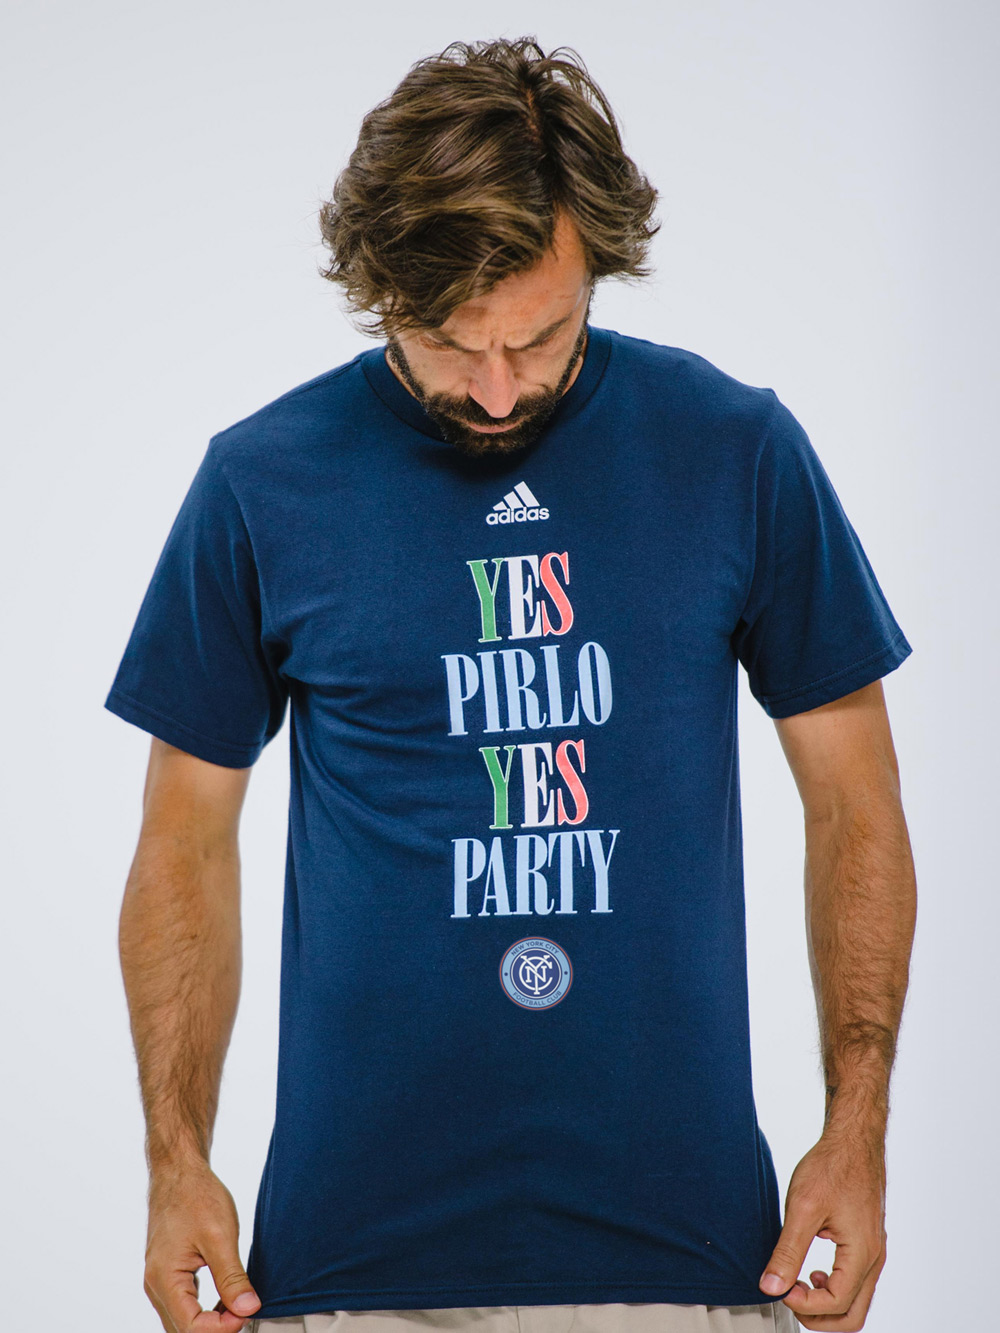 Yes Pirlo Yes Party, Tshirt, Soccer, Football, Design, Graphic Designer, Crest, Badge, Logo, Artist, Matthew Wolff Design, New York City FC, NYCFC, NYFC, NYC FC, David Villa, Frank Lampard, Andrea Pirlo, No Pirlo No Party, Yes Pirlo Yes Party, Poku, Yankee Stadium, Mix Diskerud, MLS, NY, Adidas, Third Rail, Streetwear, Apparel, Tshirt, Snapback, Hat, Cap, Branding, Kit, Identity, 2015, Inaugural Season Logo